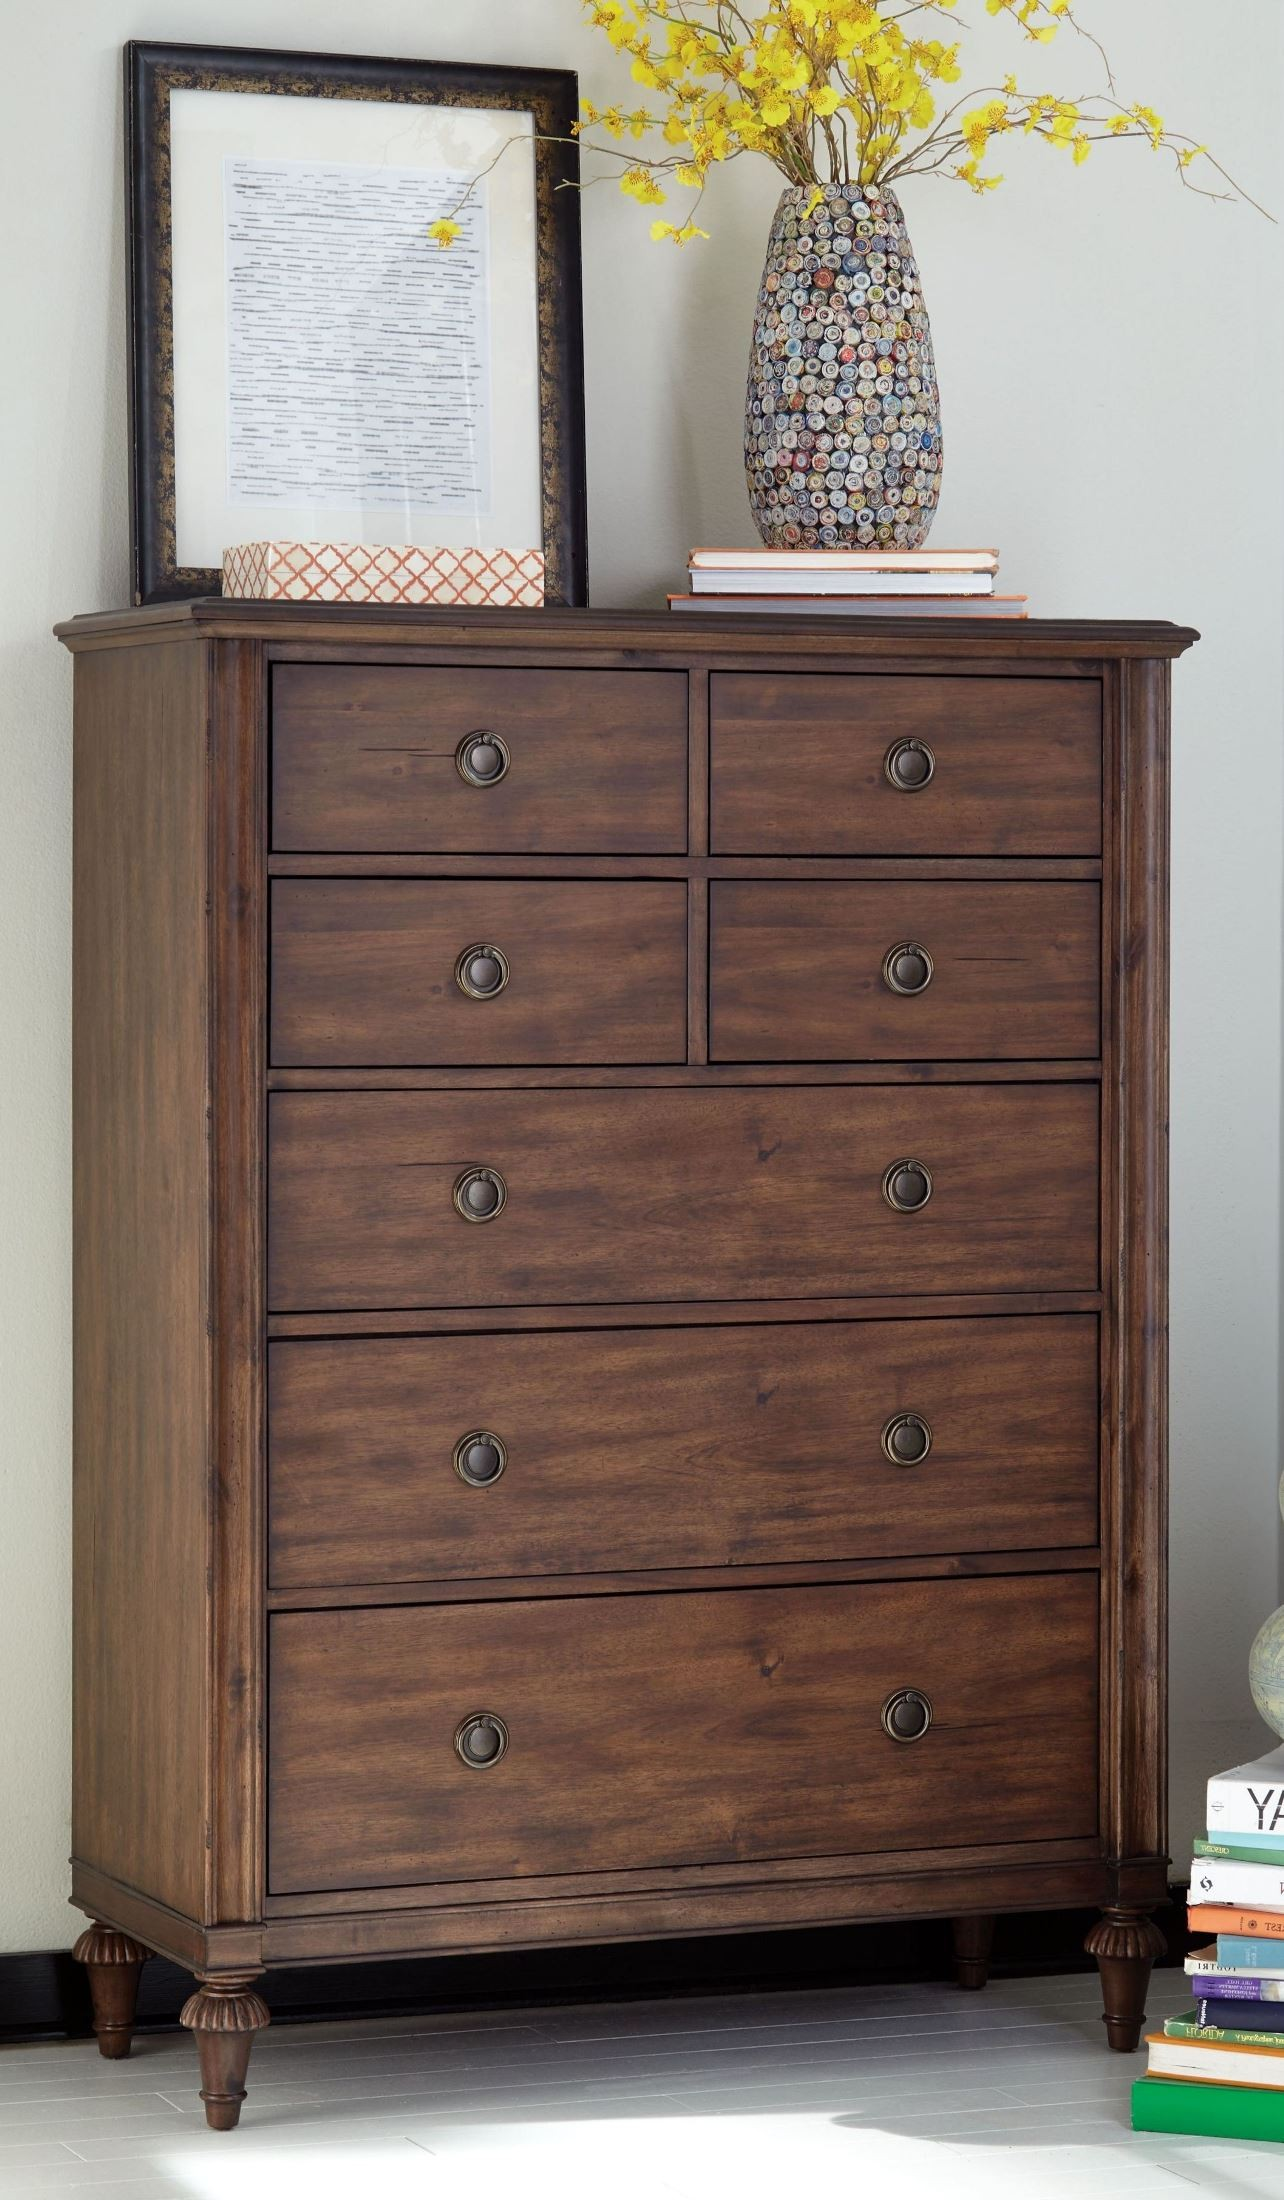 Cranford Spindle Metal Bedroom Set From Broyhill (4800-270